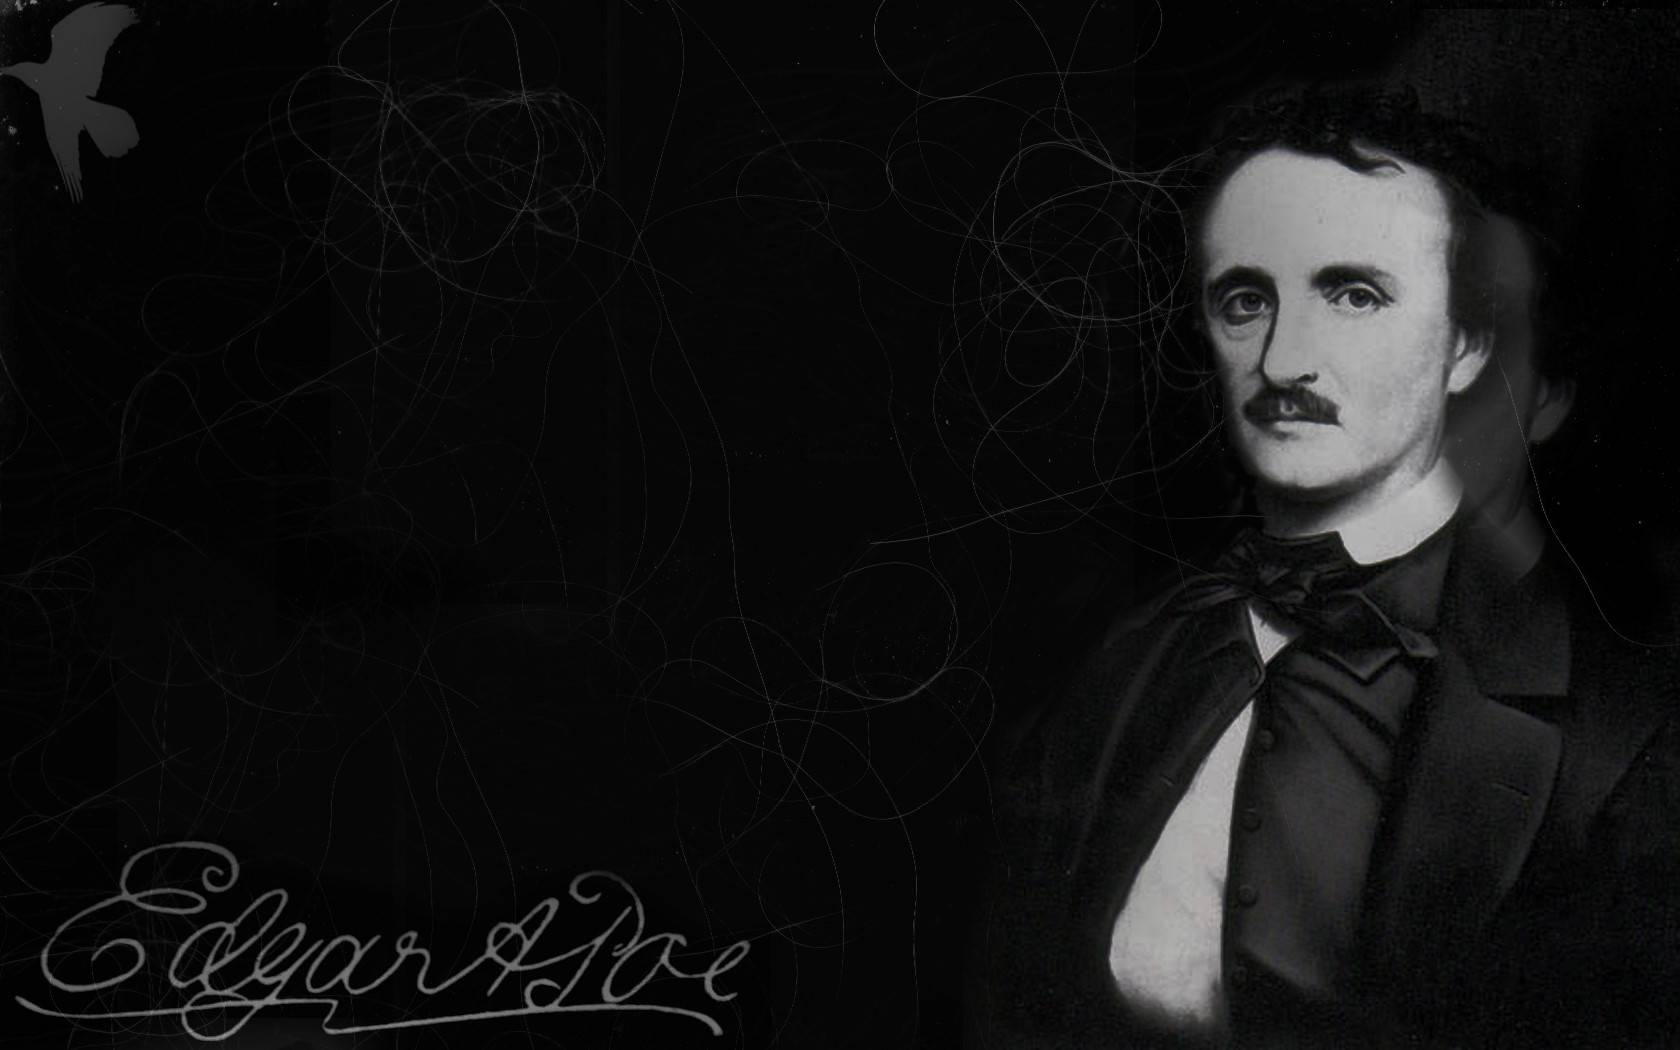 Edgar Allan Poe Wallpaper 3 Wallpaper for Edgar Allan Poe Edgar 1680x1050